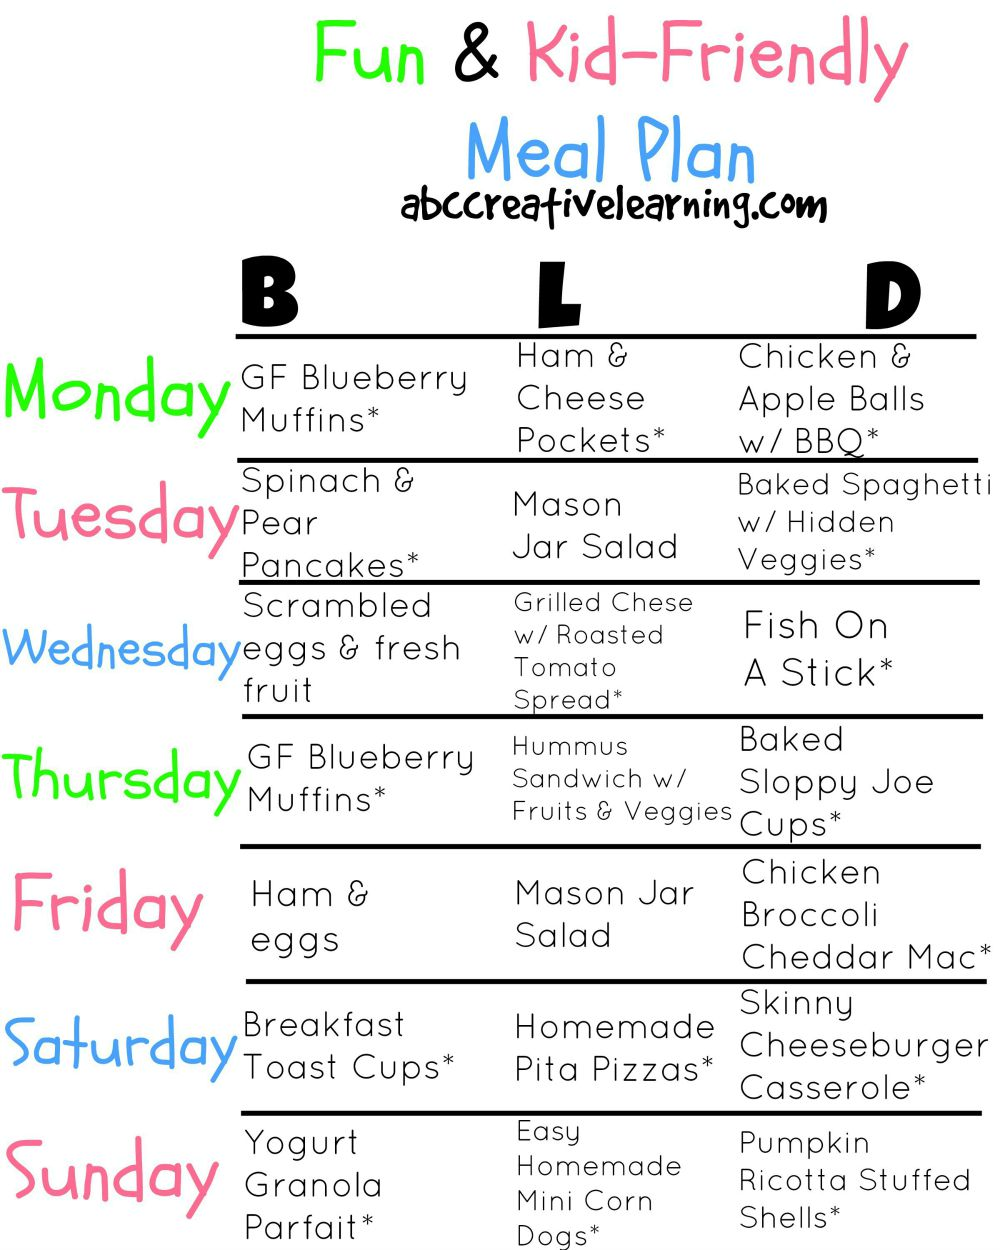 Fun and Kid-Friendly Meal Plan Ideas